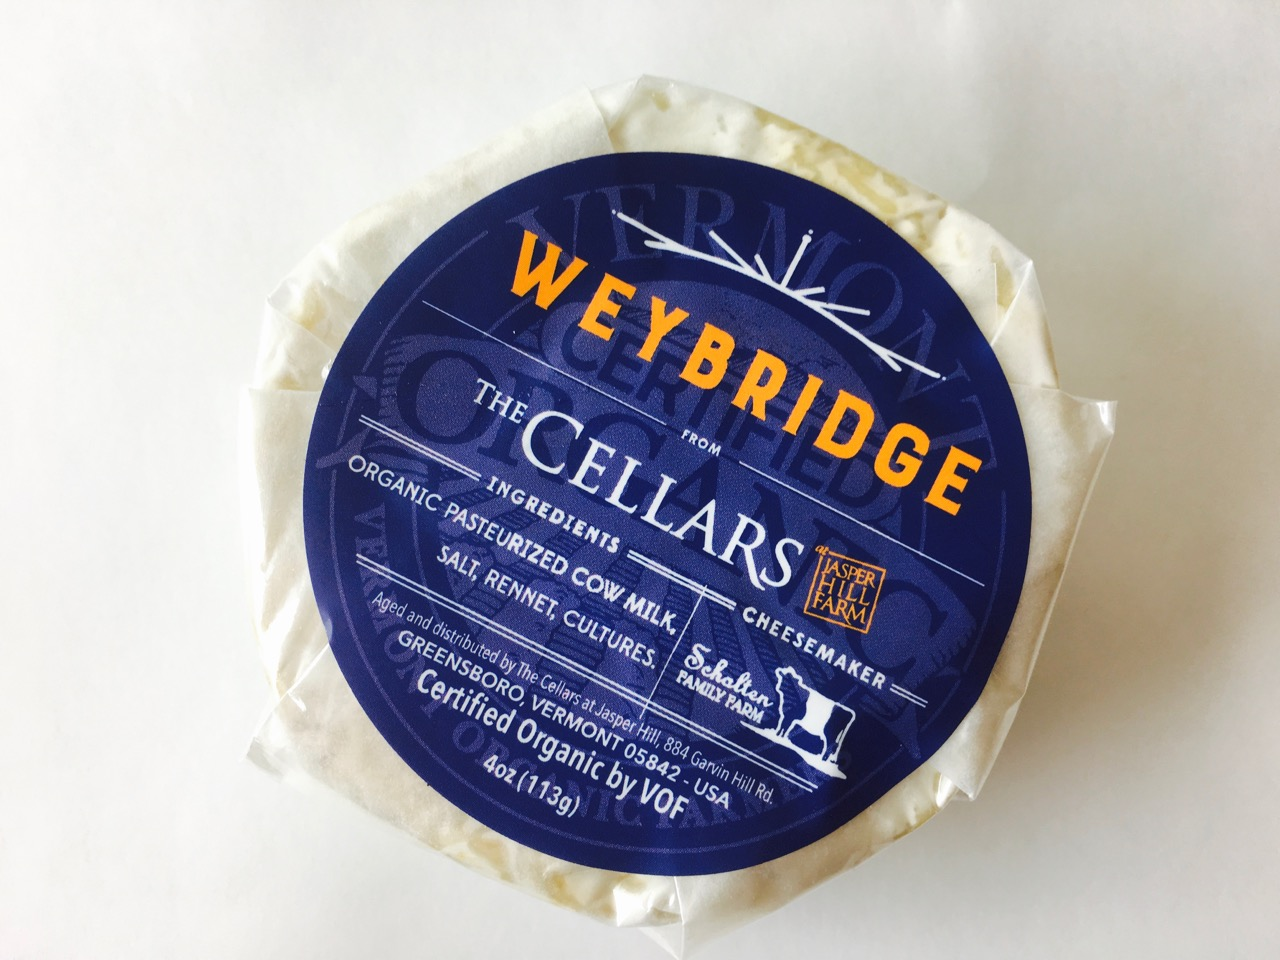 Cellars at Jasper Hill Farm Weybridge Cheese